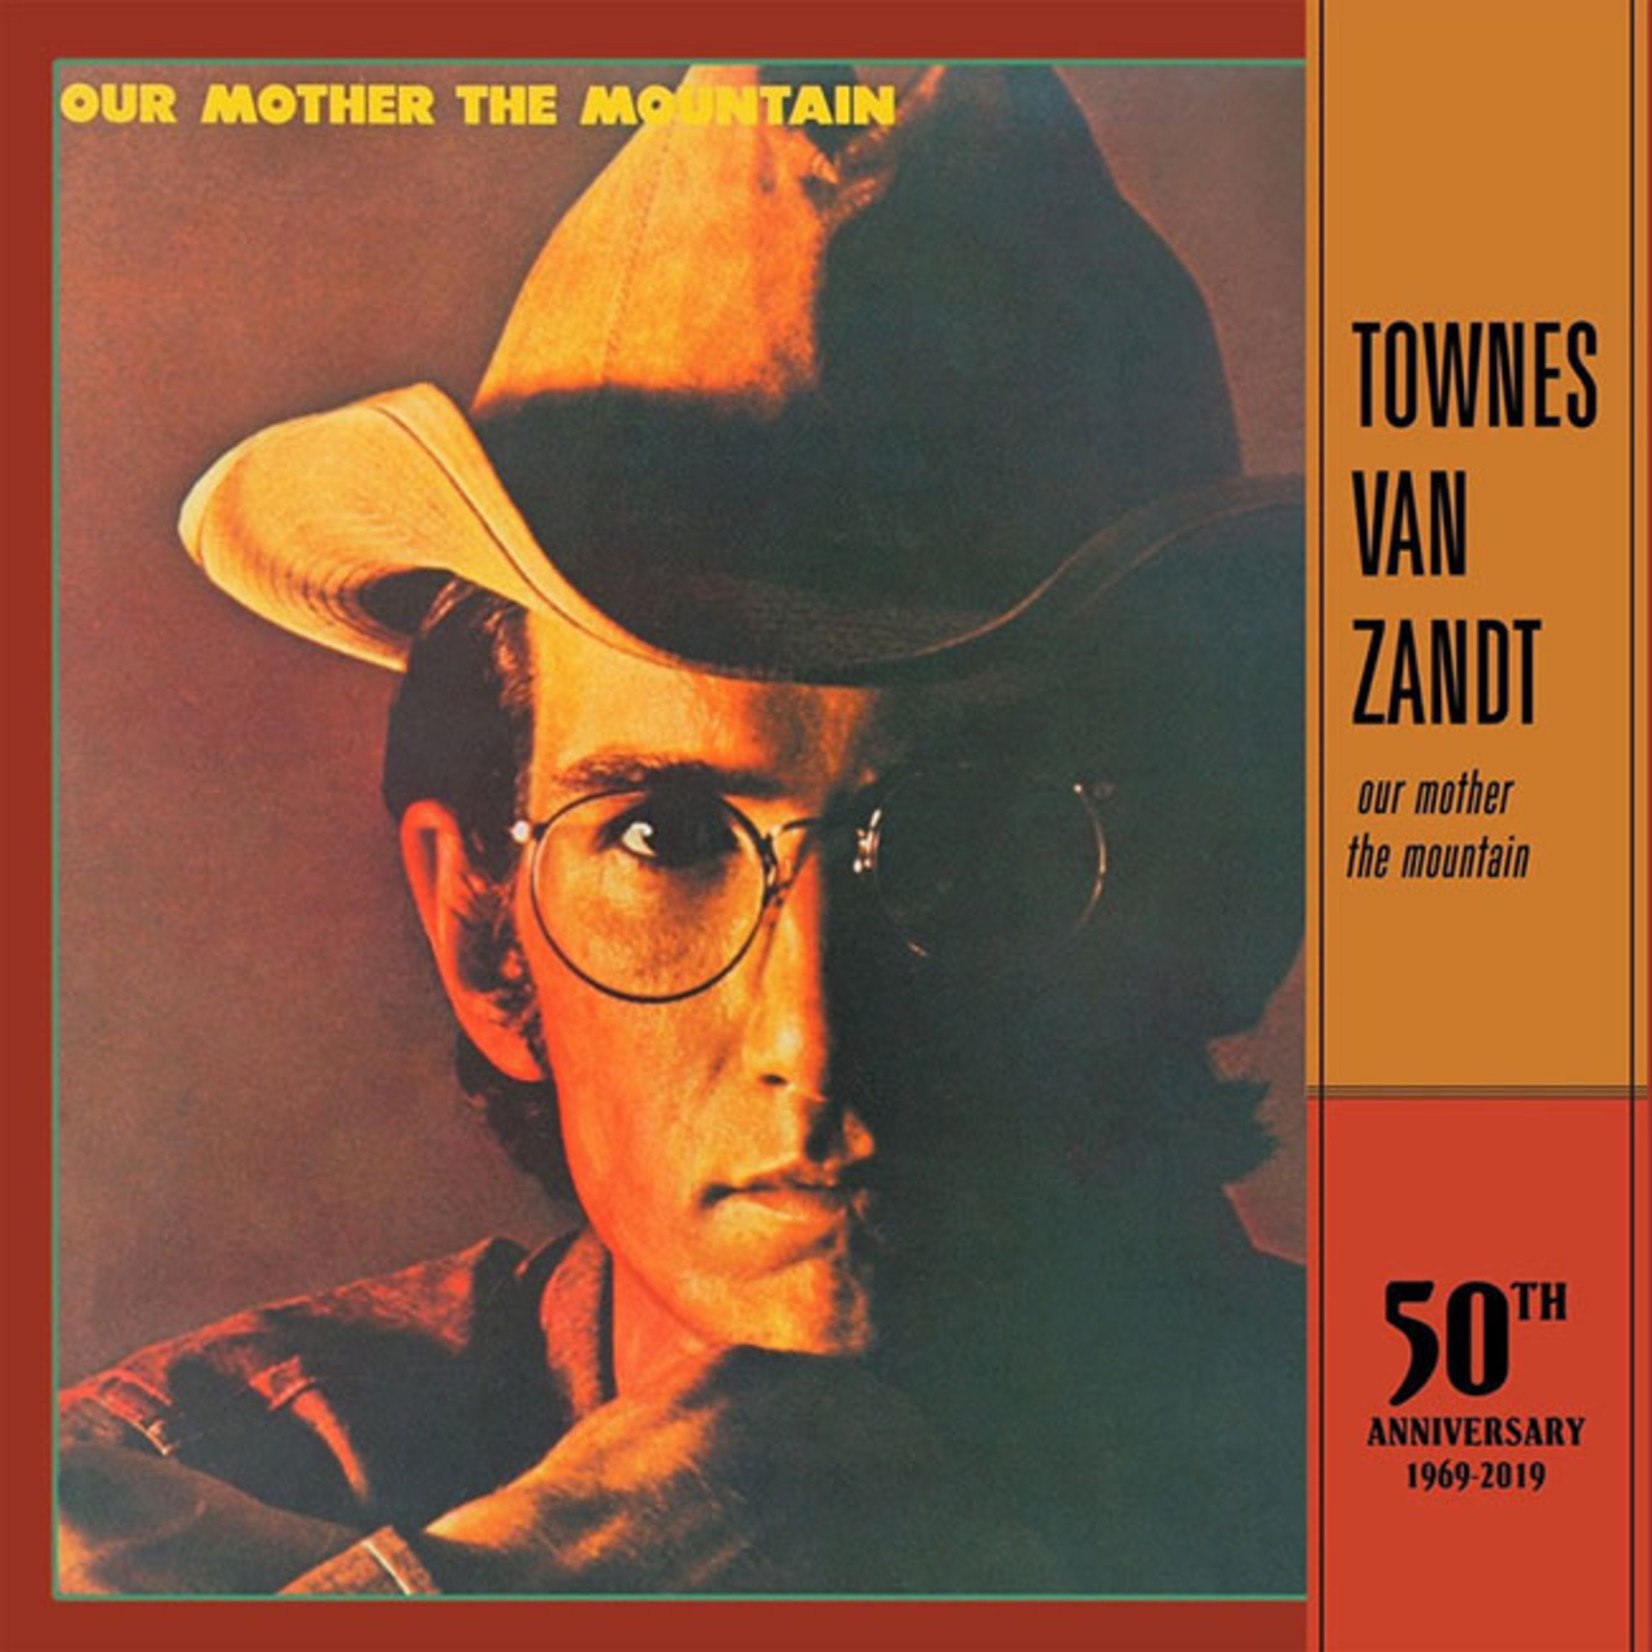 [New] Van Zandt, Townes: Our Mother The Mountain (50th Anniversary Ed.)